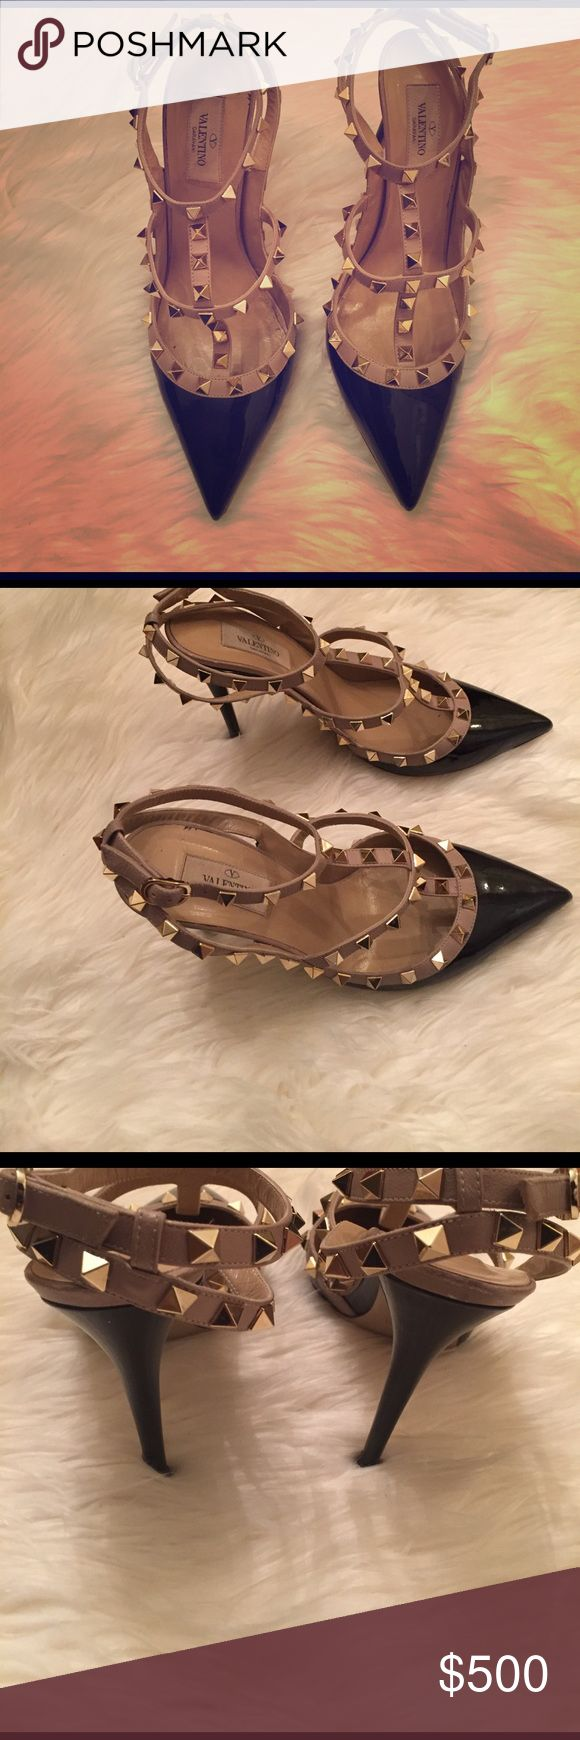 Valentino Rockstud Pumps Valentino Rockstud Pumps, in a size 39. They run small and they show some wear. They are still in good condition. Valentino Shoes Heels